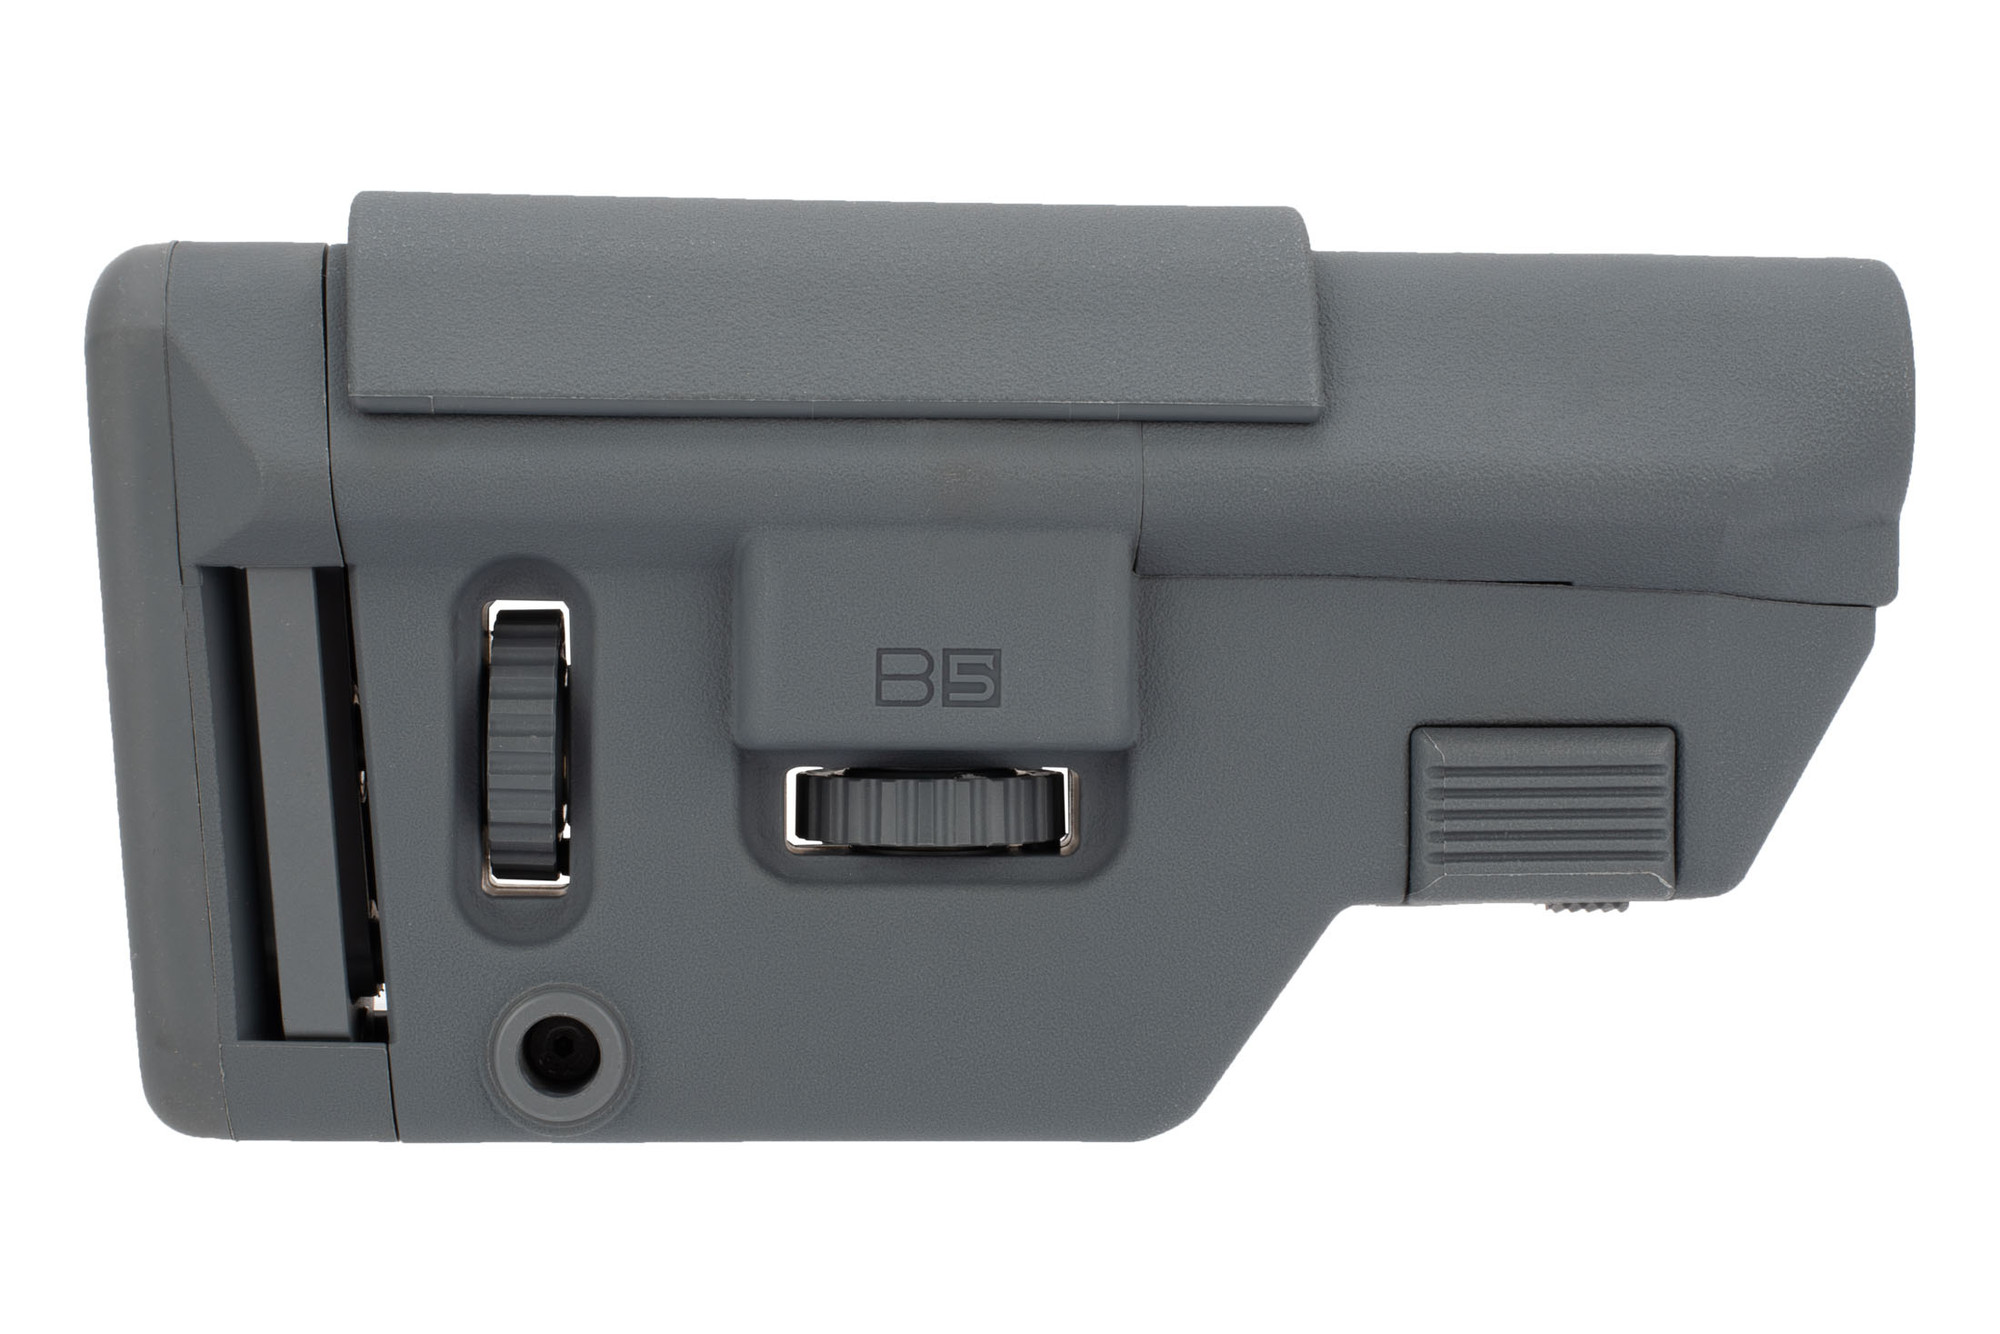 B5 Systems AR-15 Collapsible Precision Stock - Wolf Gray